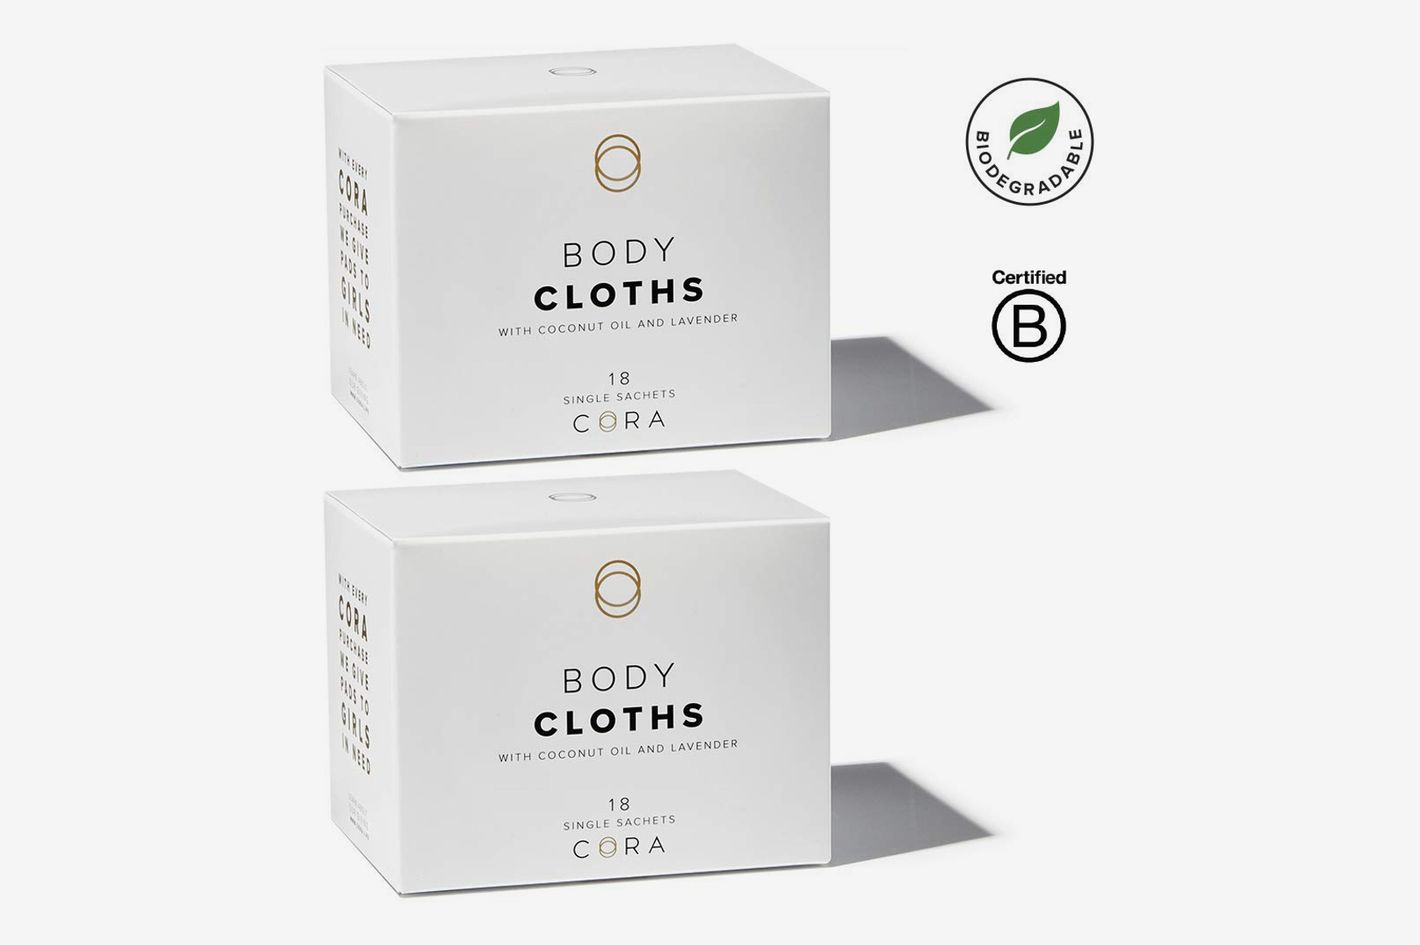 Cora Bamboo Feminine Wipes with Plant-Based Moisturizers and Essential Oils